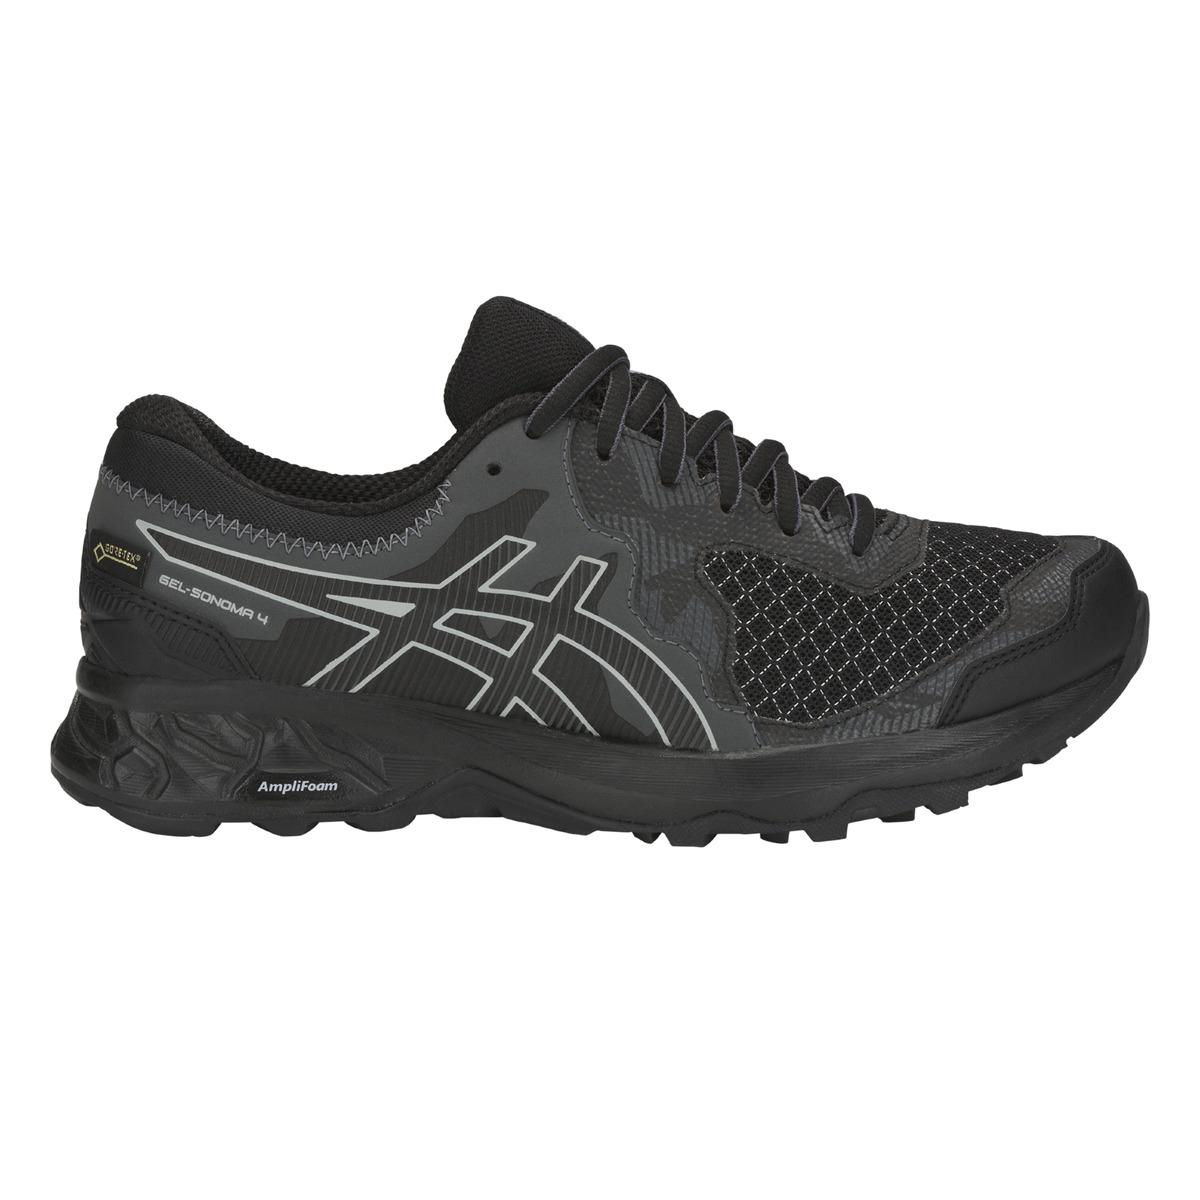 e5cb214932a8 Asics - Black Gel-sonoma 4 G-tx Running Shoes - Lyst. View fullscreen